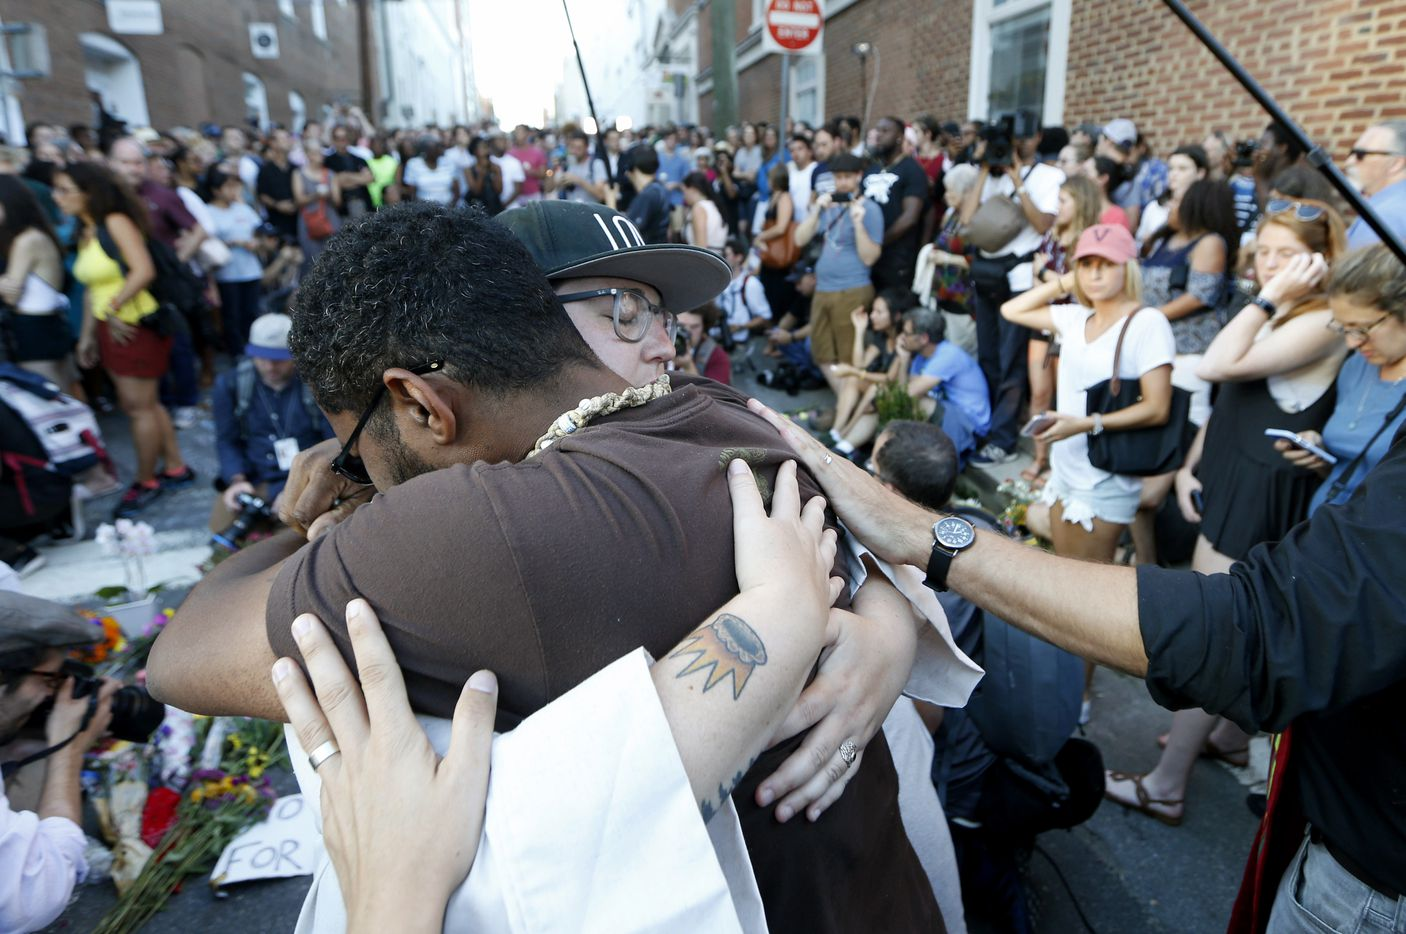 Brittney Cain-Conley (in a hat), lead organizer for Congregate Charlottesville, gets a hug from a supporter after she addressed the crowd during a vigil on Sunday at the site where Heather Heyer was killed a day earlier in Charlottesville, Va.